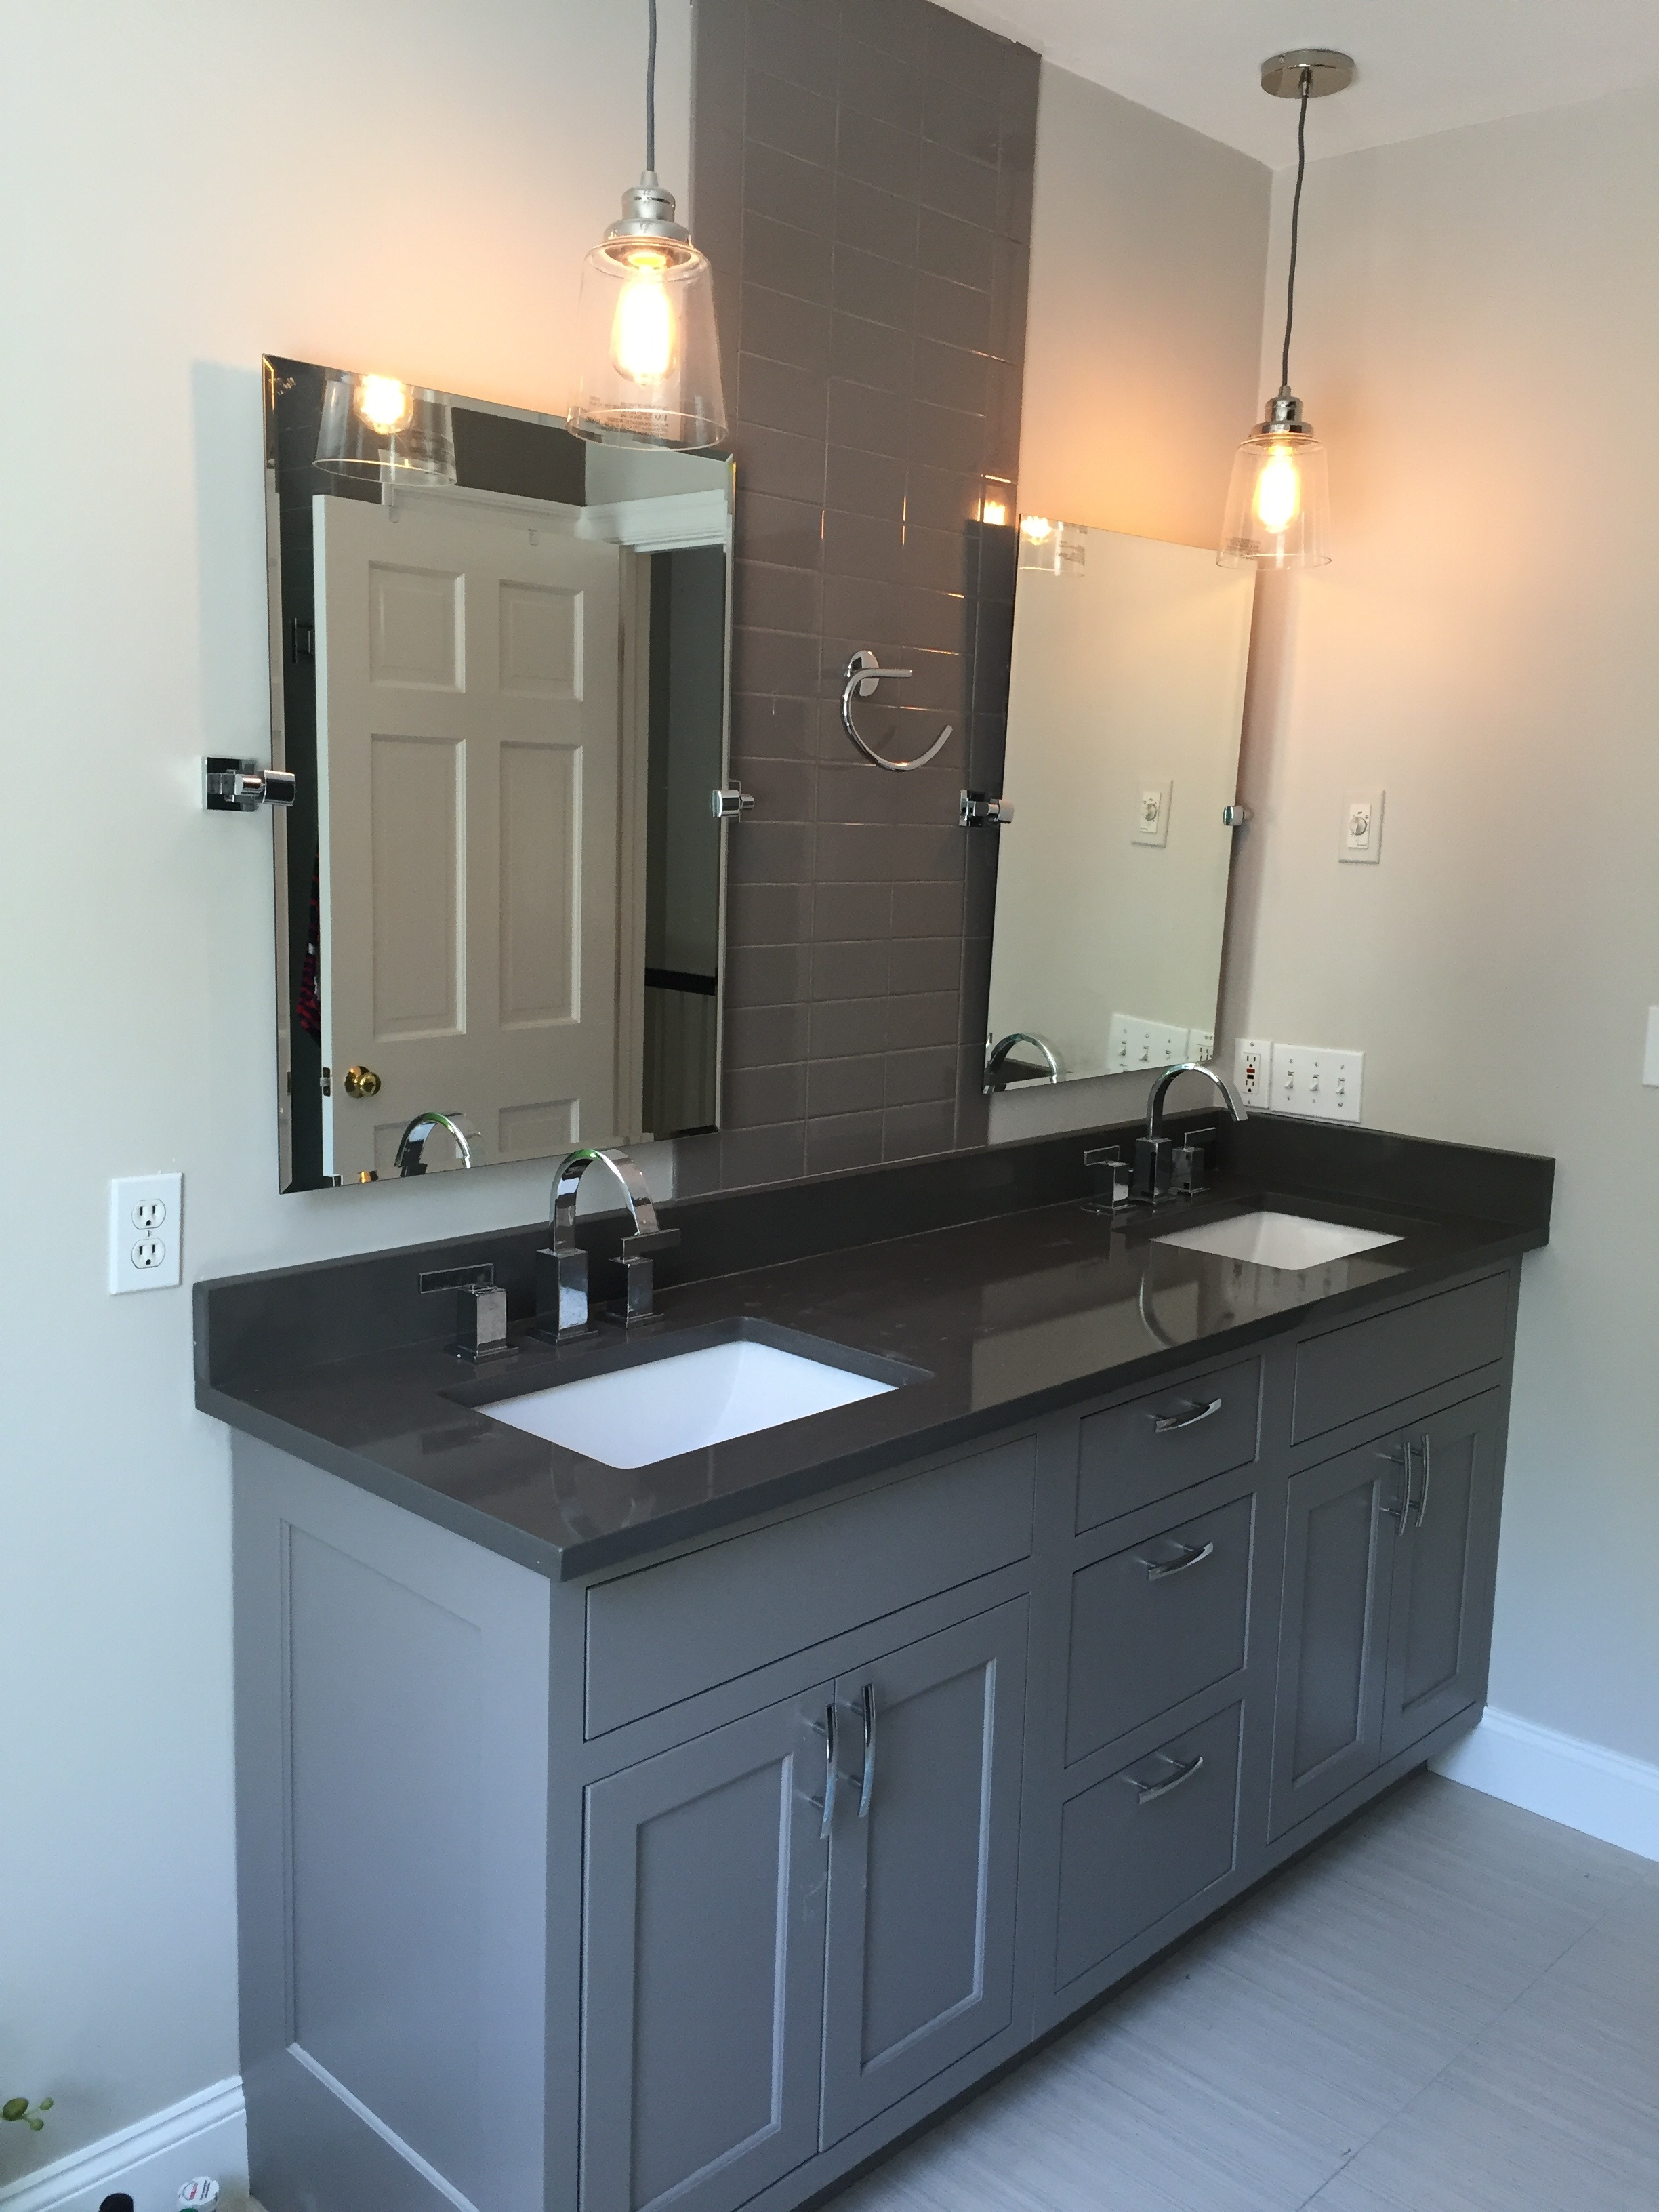 Bathroom Remodel Order Of Operations boxford, ma (bathroom remodel)